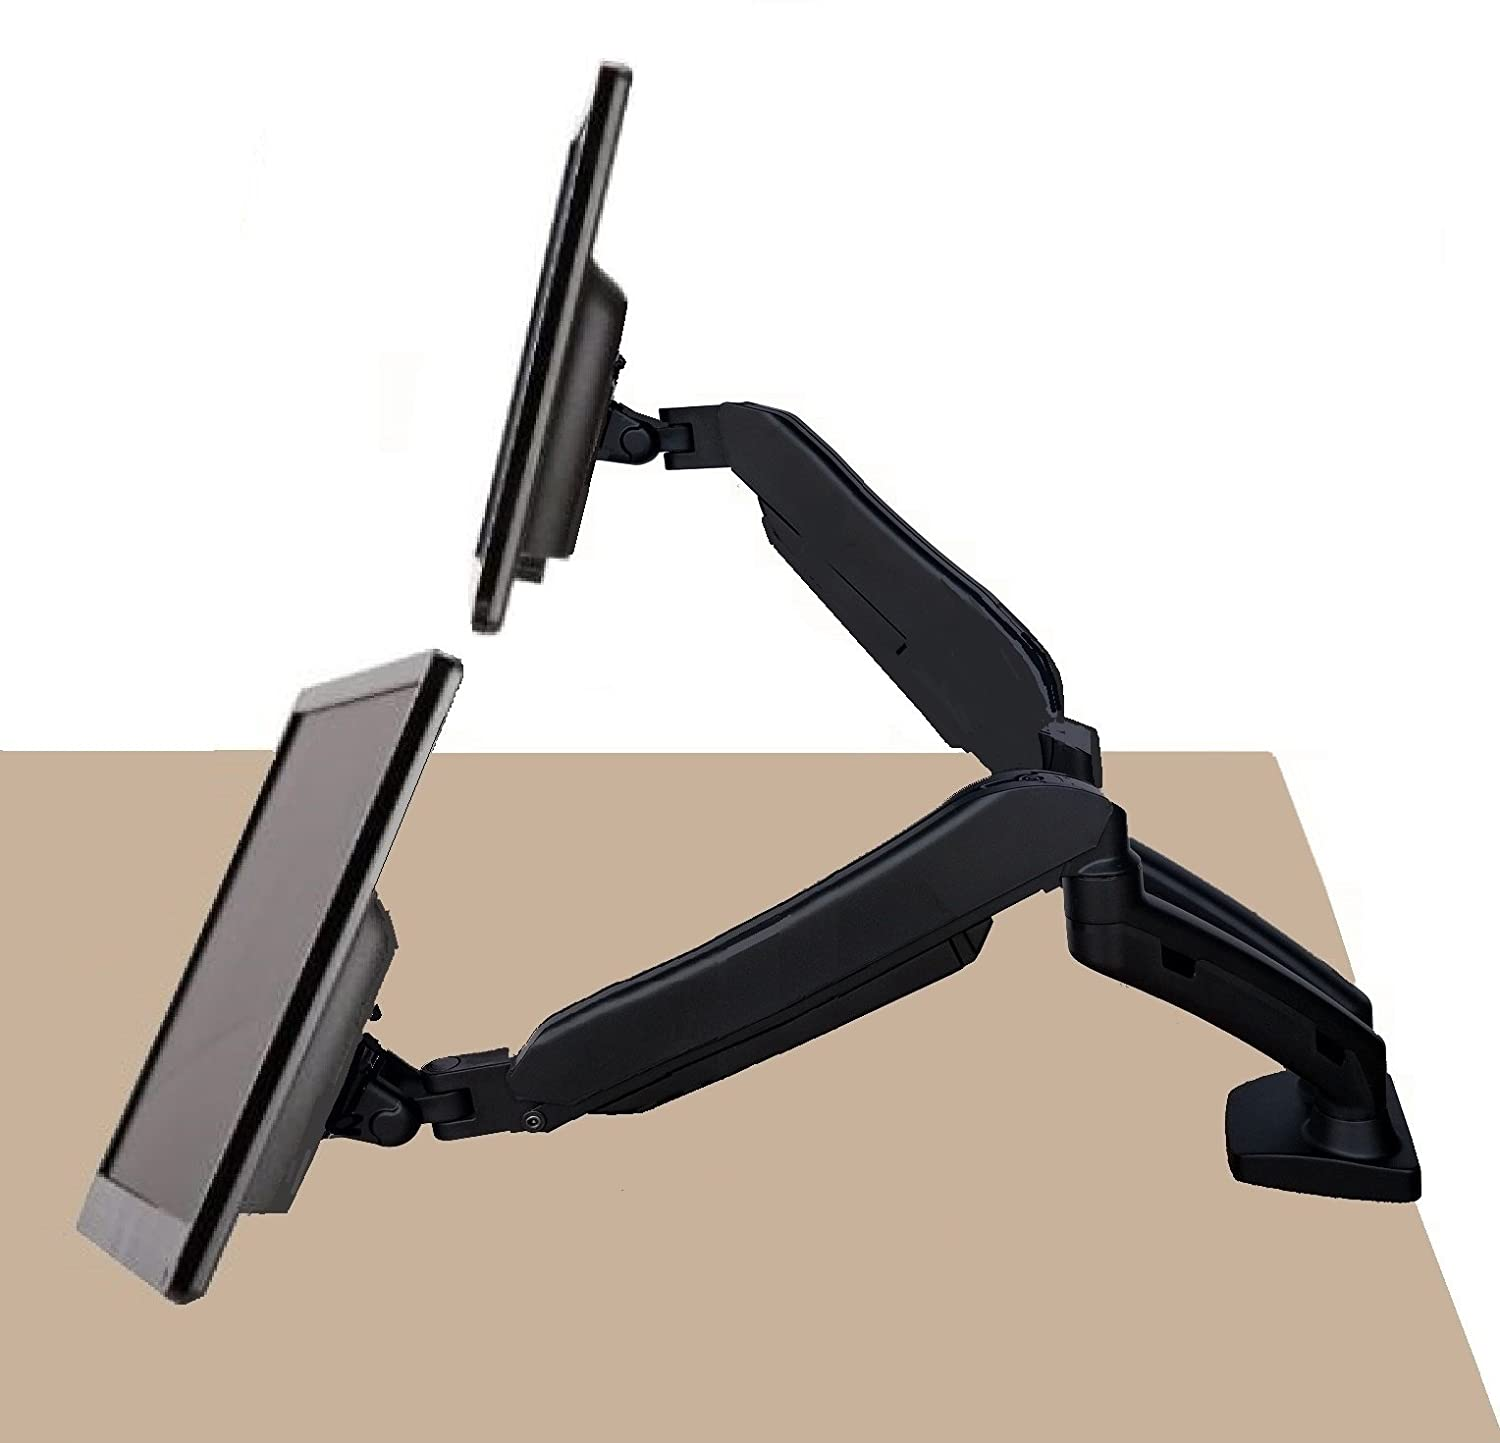 """EZM Dual Hight Adjustable Full Motion Gas Spring Monitor Mount Stand Desktop Clamp with Grommet Mount Option fits 13"""" - 27"""" (002-0031)"""